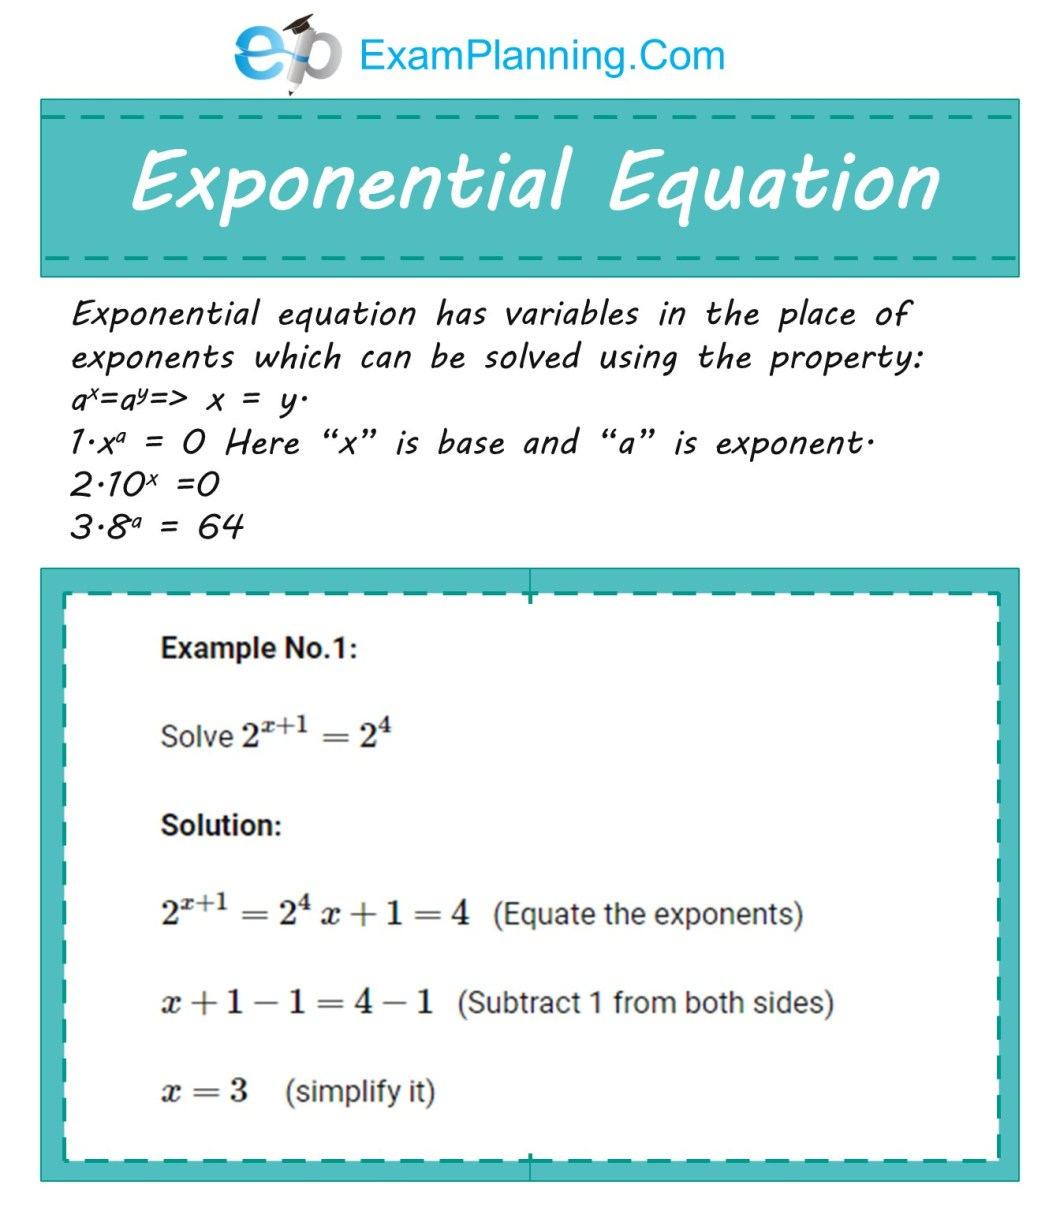 Exponential Equations Examples